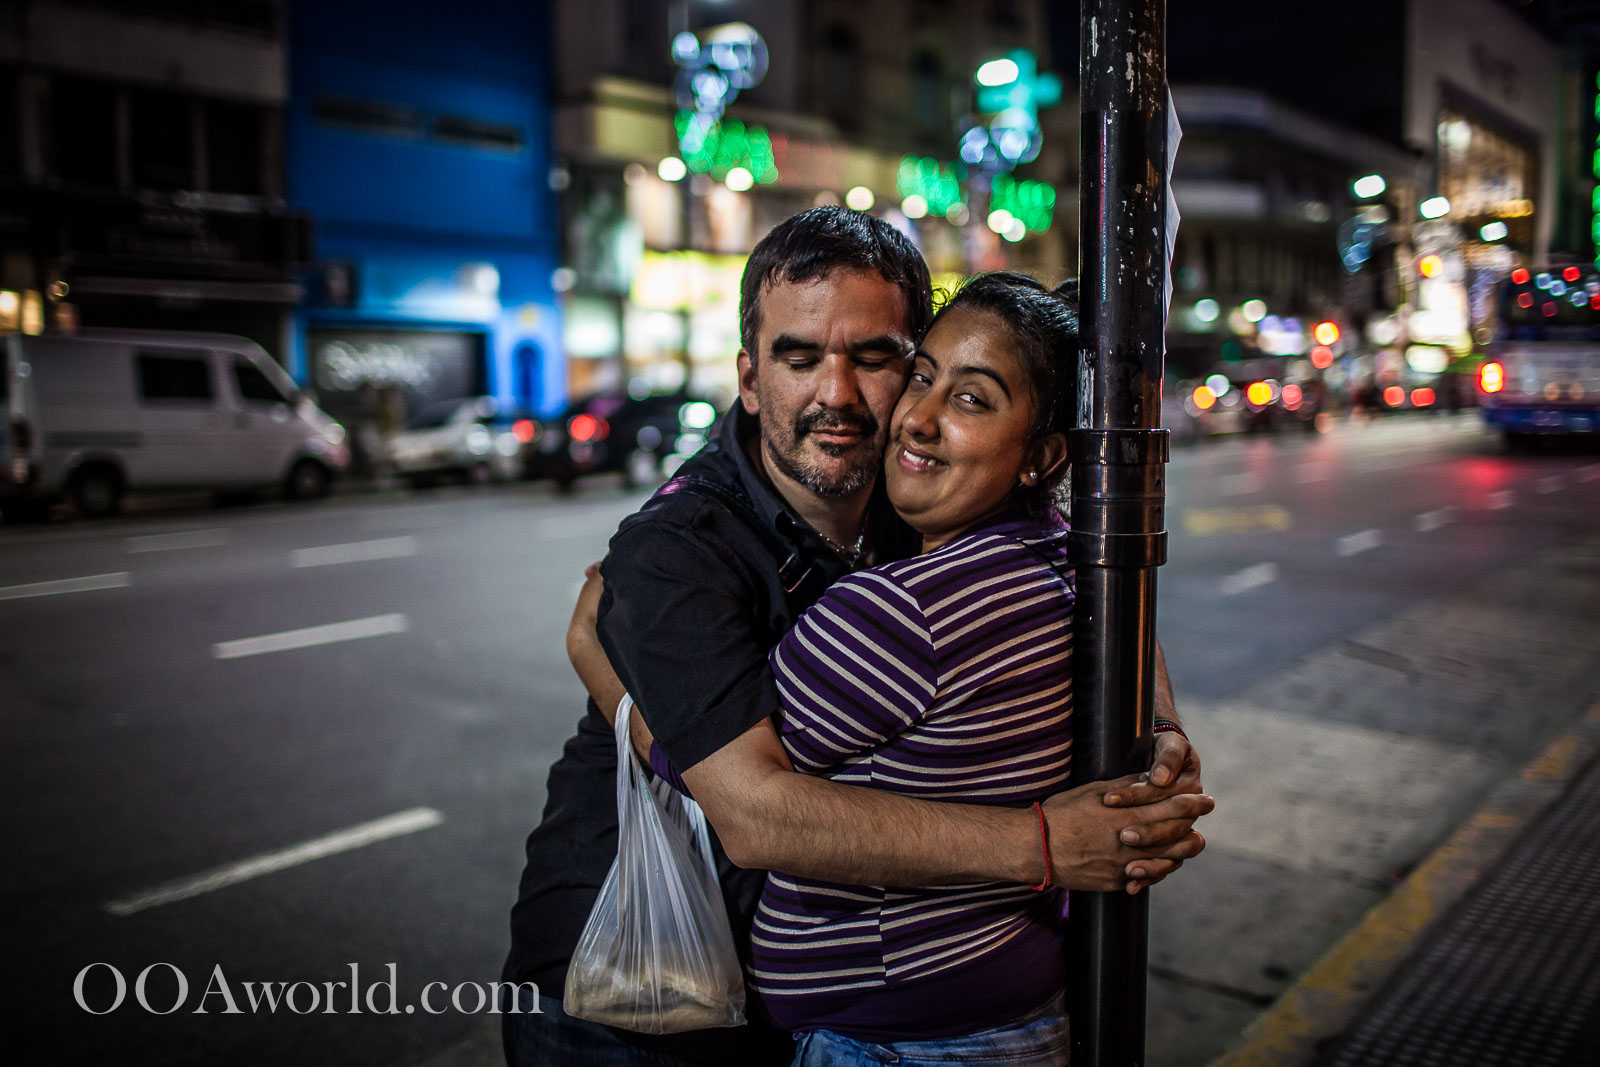 Sweet Love Buenos Aires Photos Avenida Corrientes Ooaworld